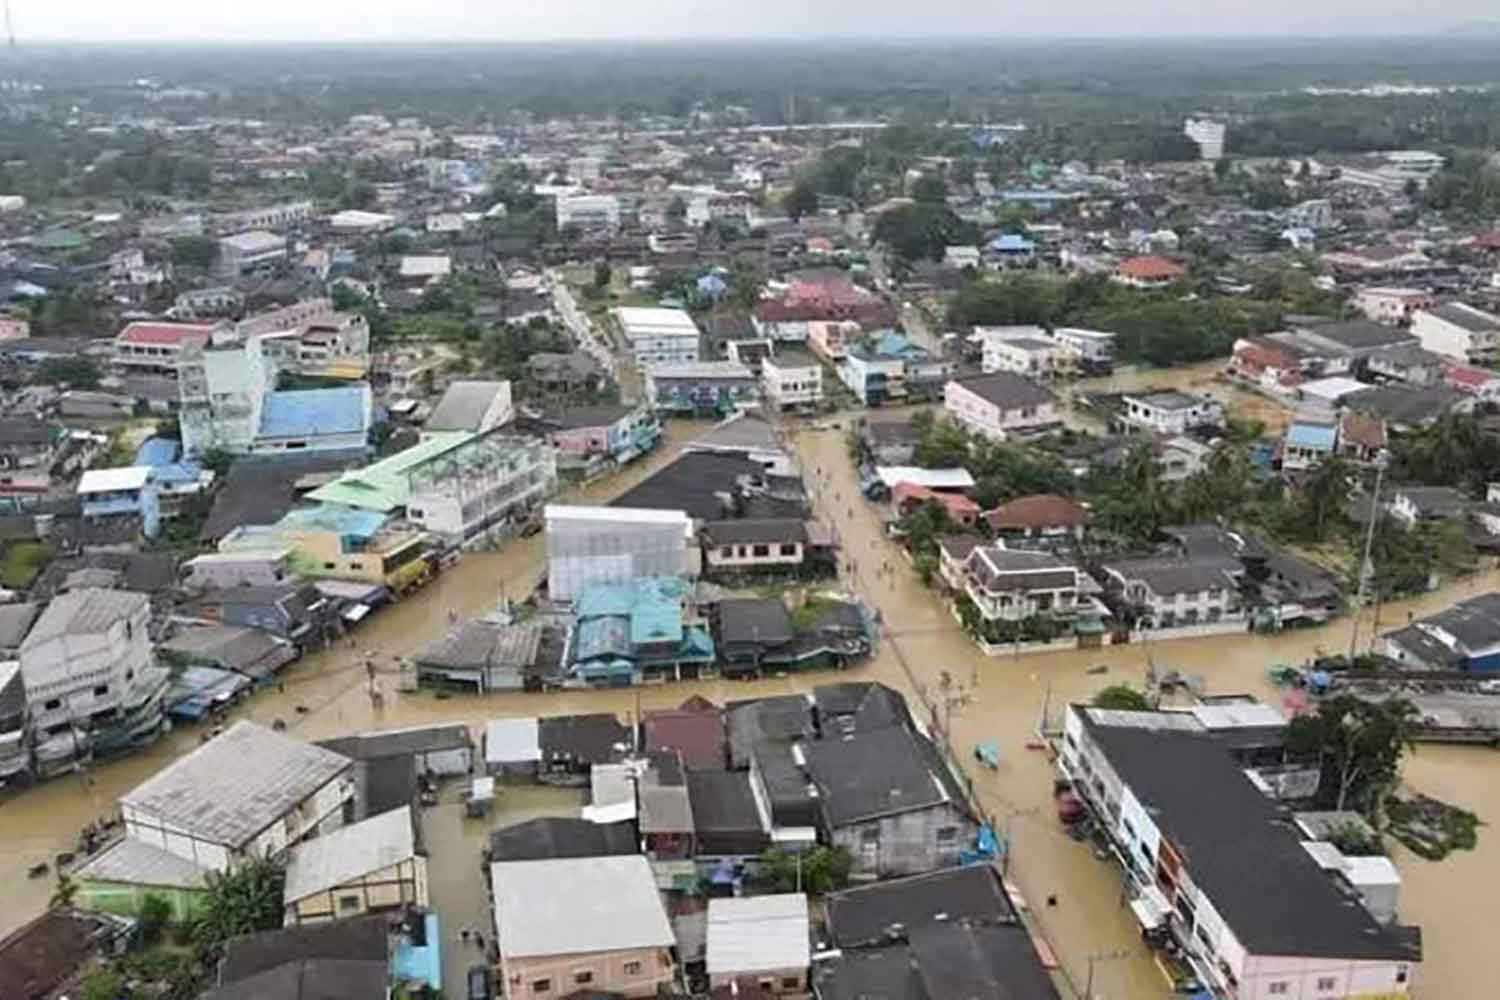 Downtown Pattani is flooded on Monday. ABDULLAH BENJAKAT